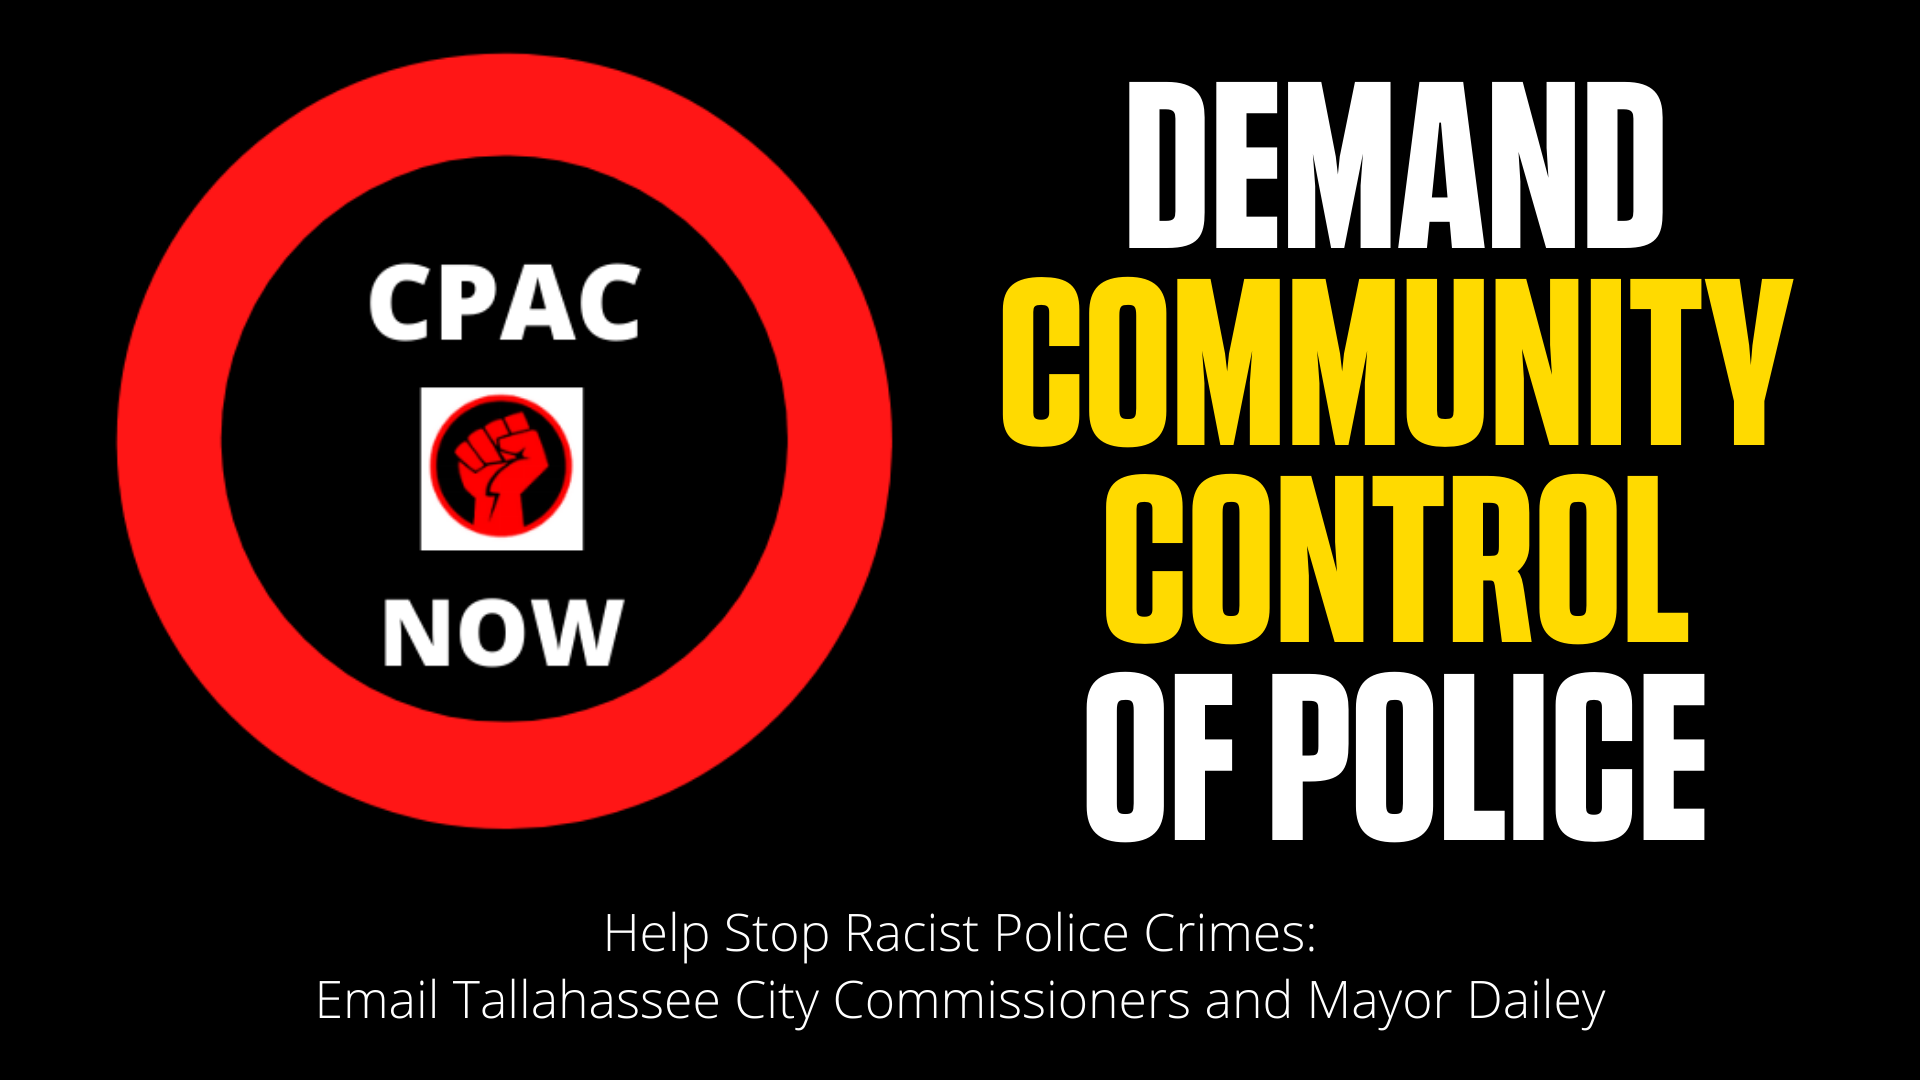 Demand_community_control_of_police_(1)